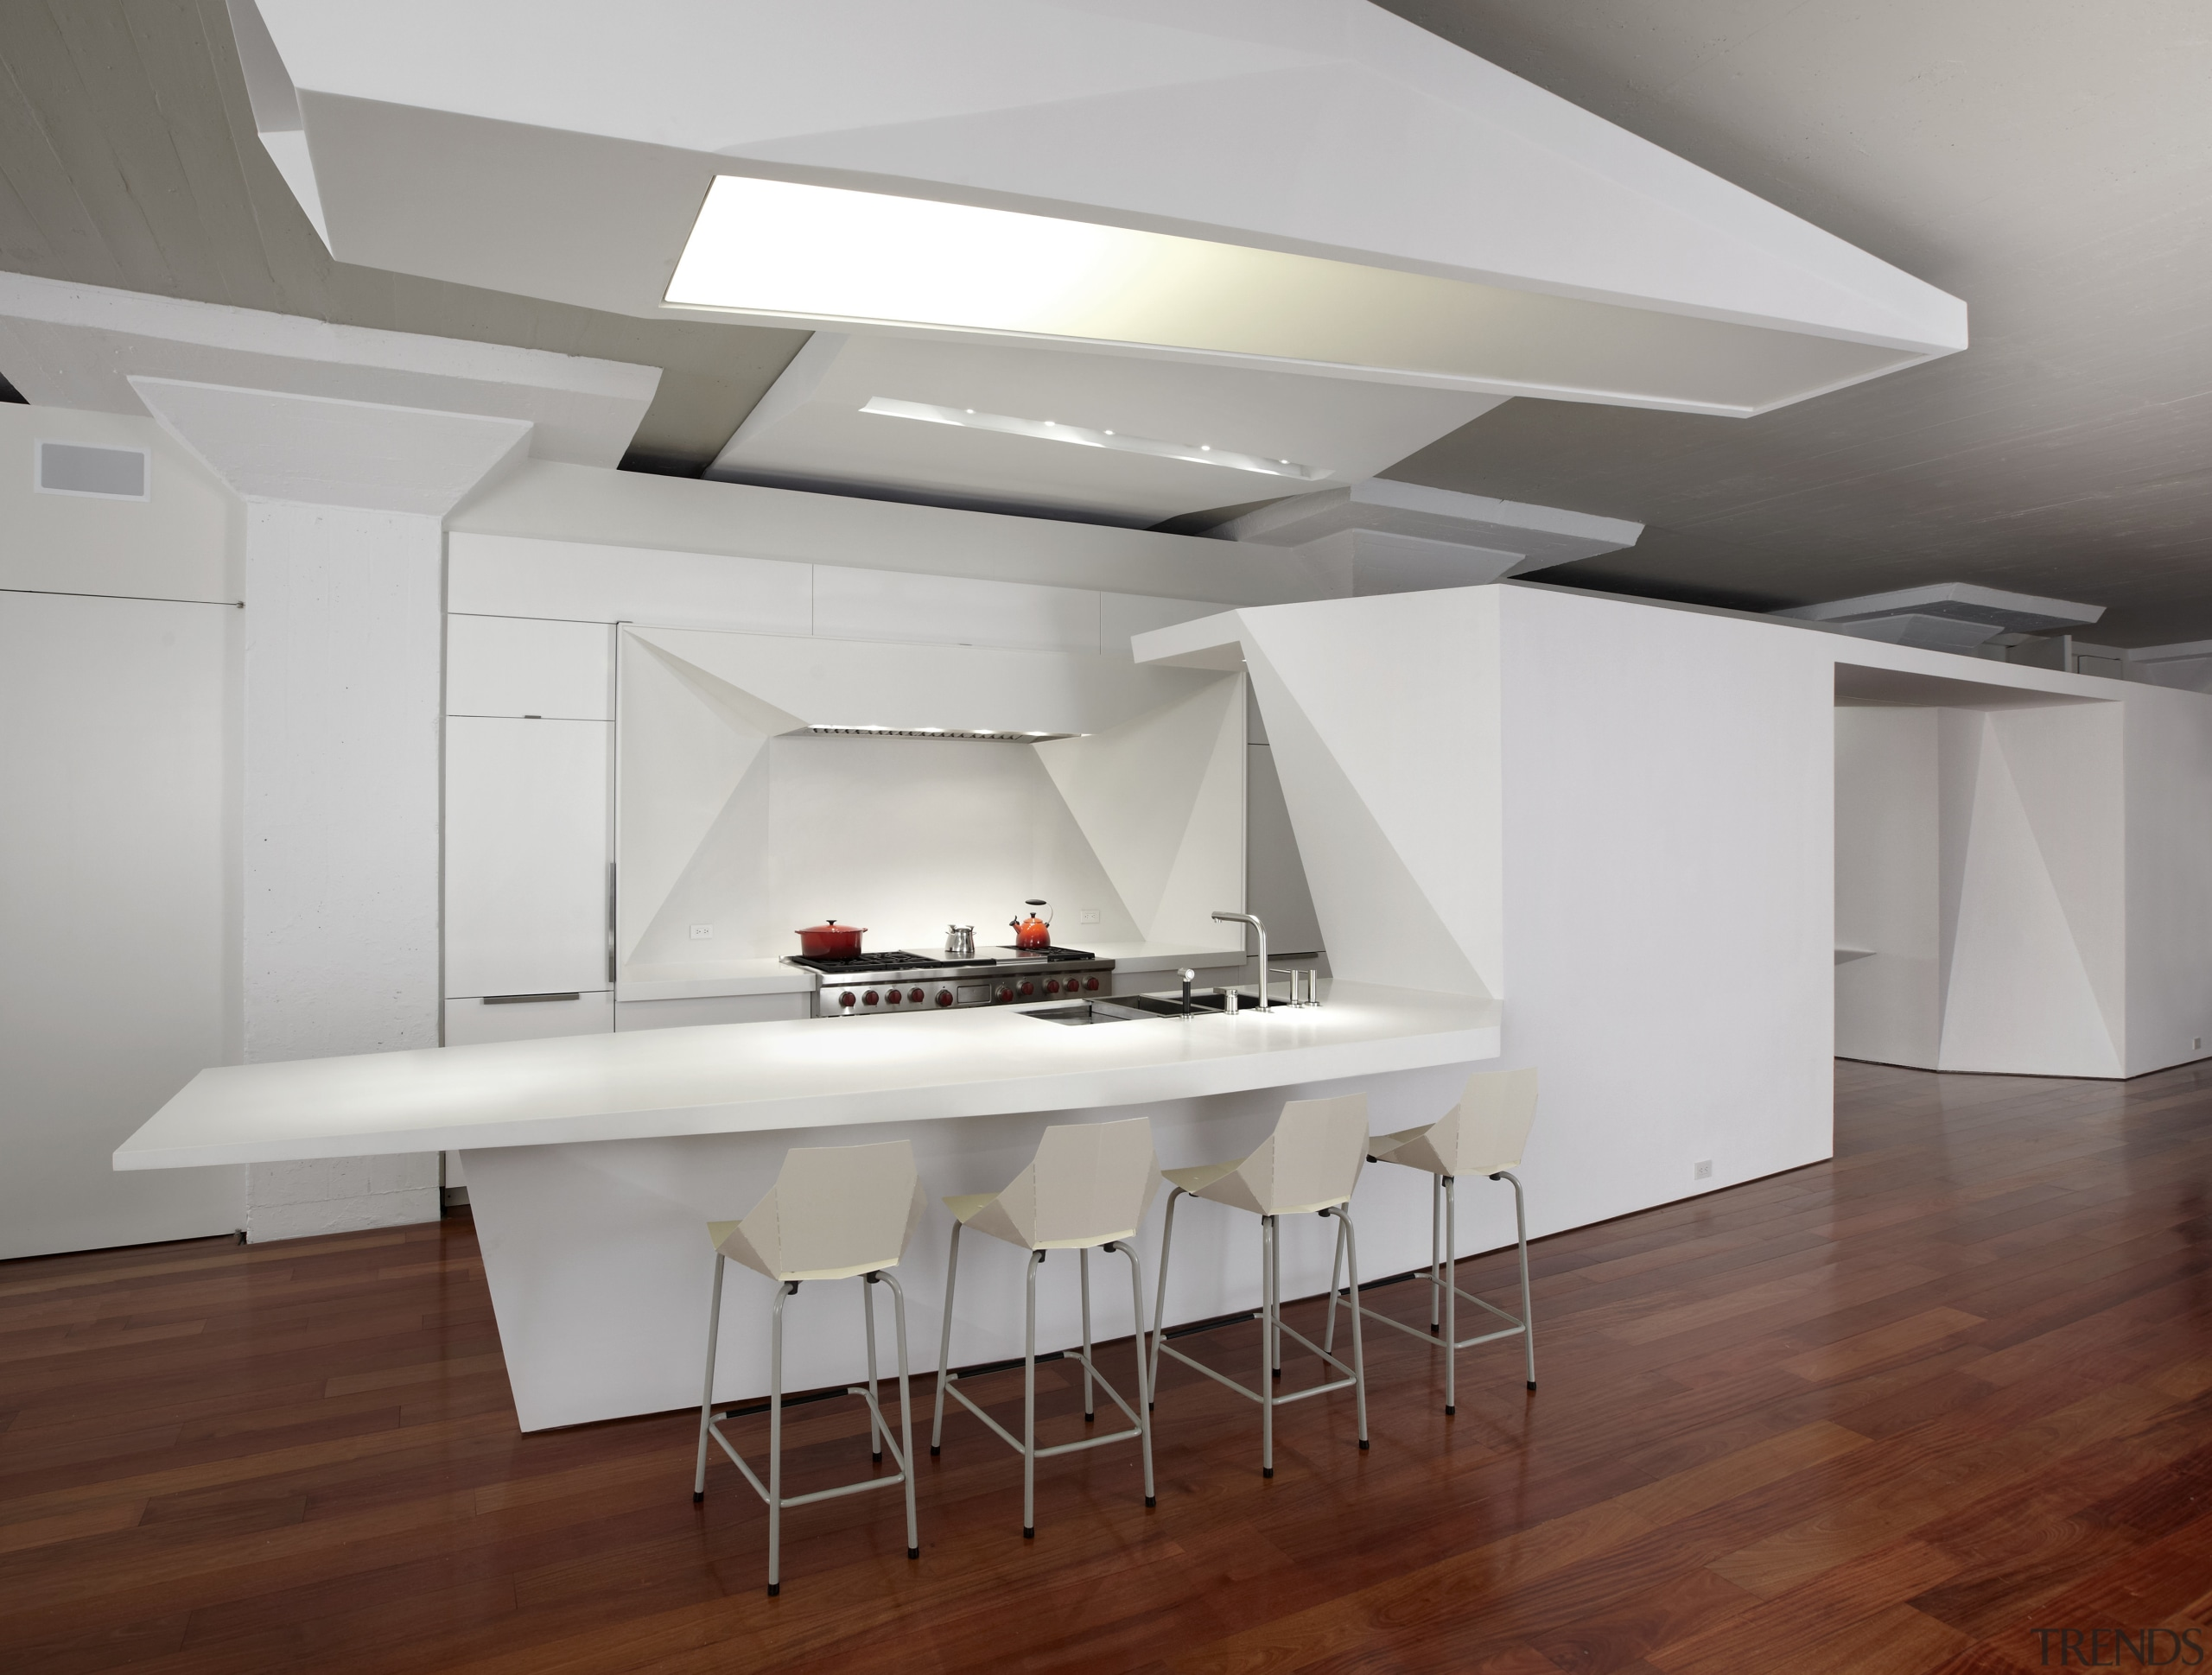 Here is a view of a kitchen designed architecture, ceiling, daylighting, floor, flooring, furniture, interior design, loft, product design, table, wood flooring, gray